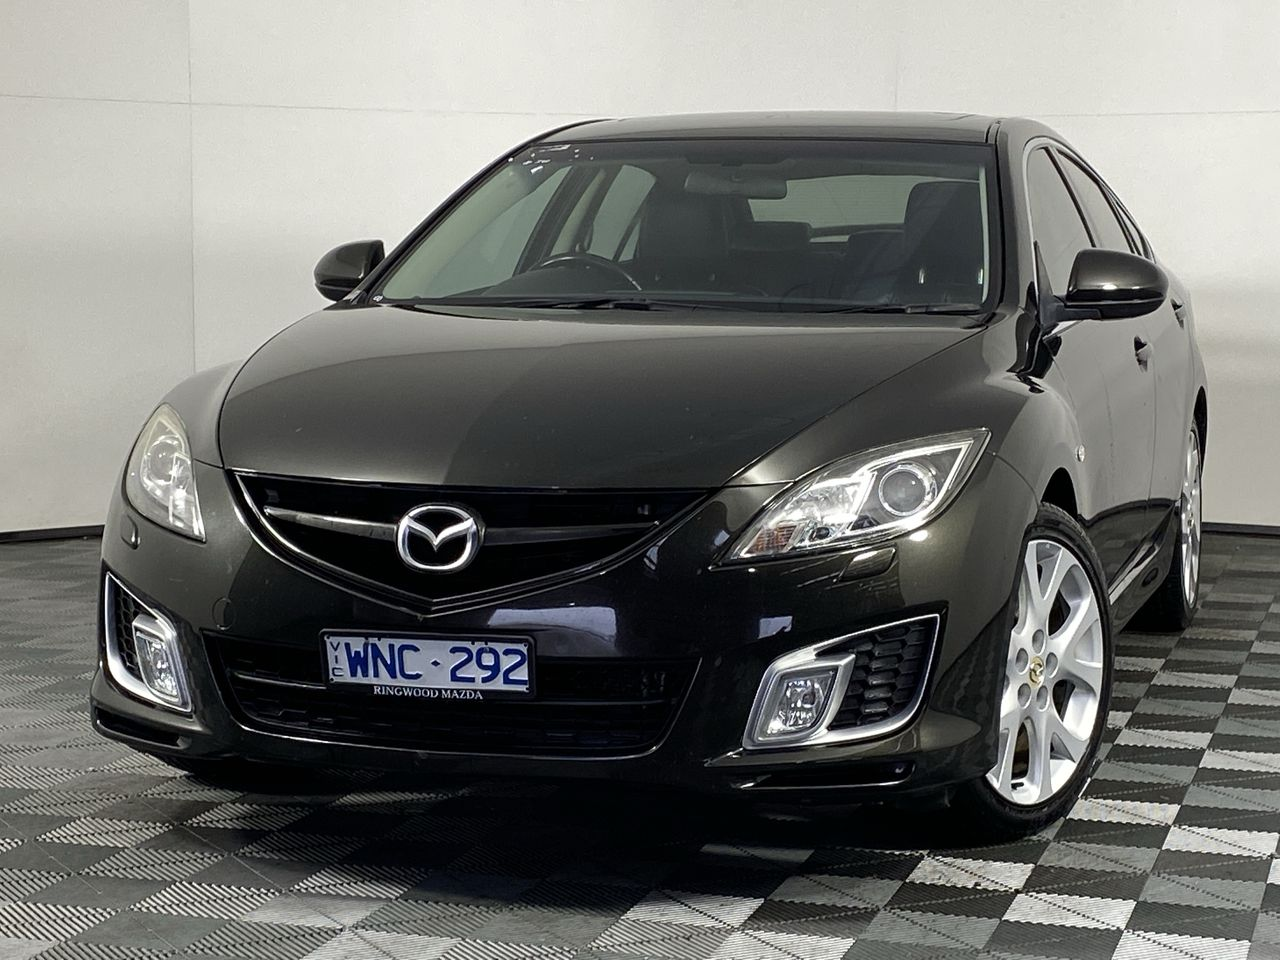 2008 Mazda 6 Luxury Sports GH Automatic Hatchback